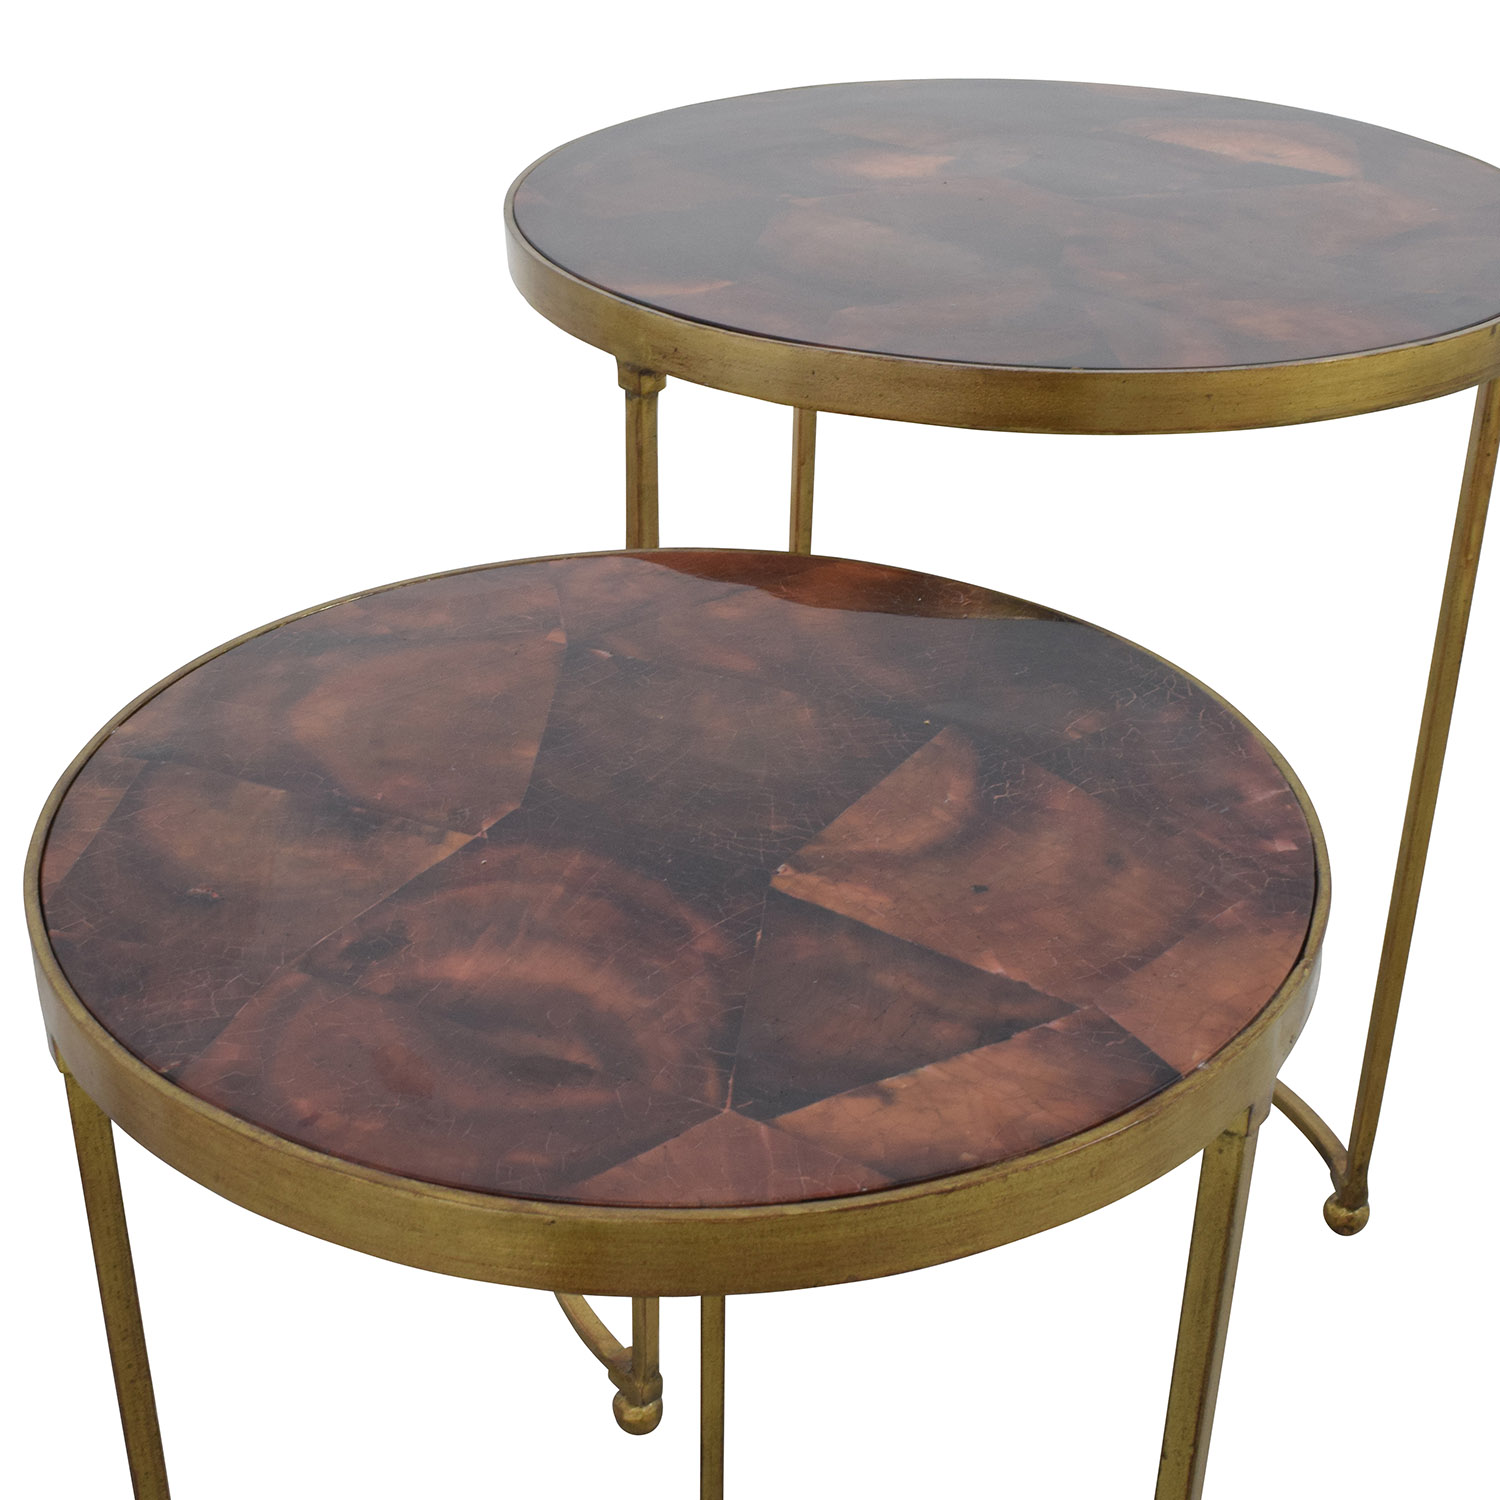 shop ABC Carpet & Home Nesting Round Bronze and Brass Accent Tables ABC Carpet and Home